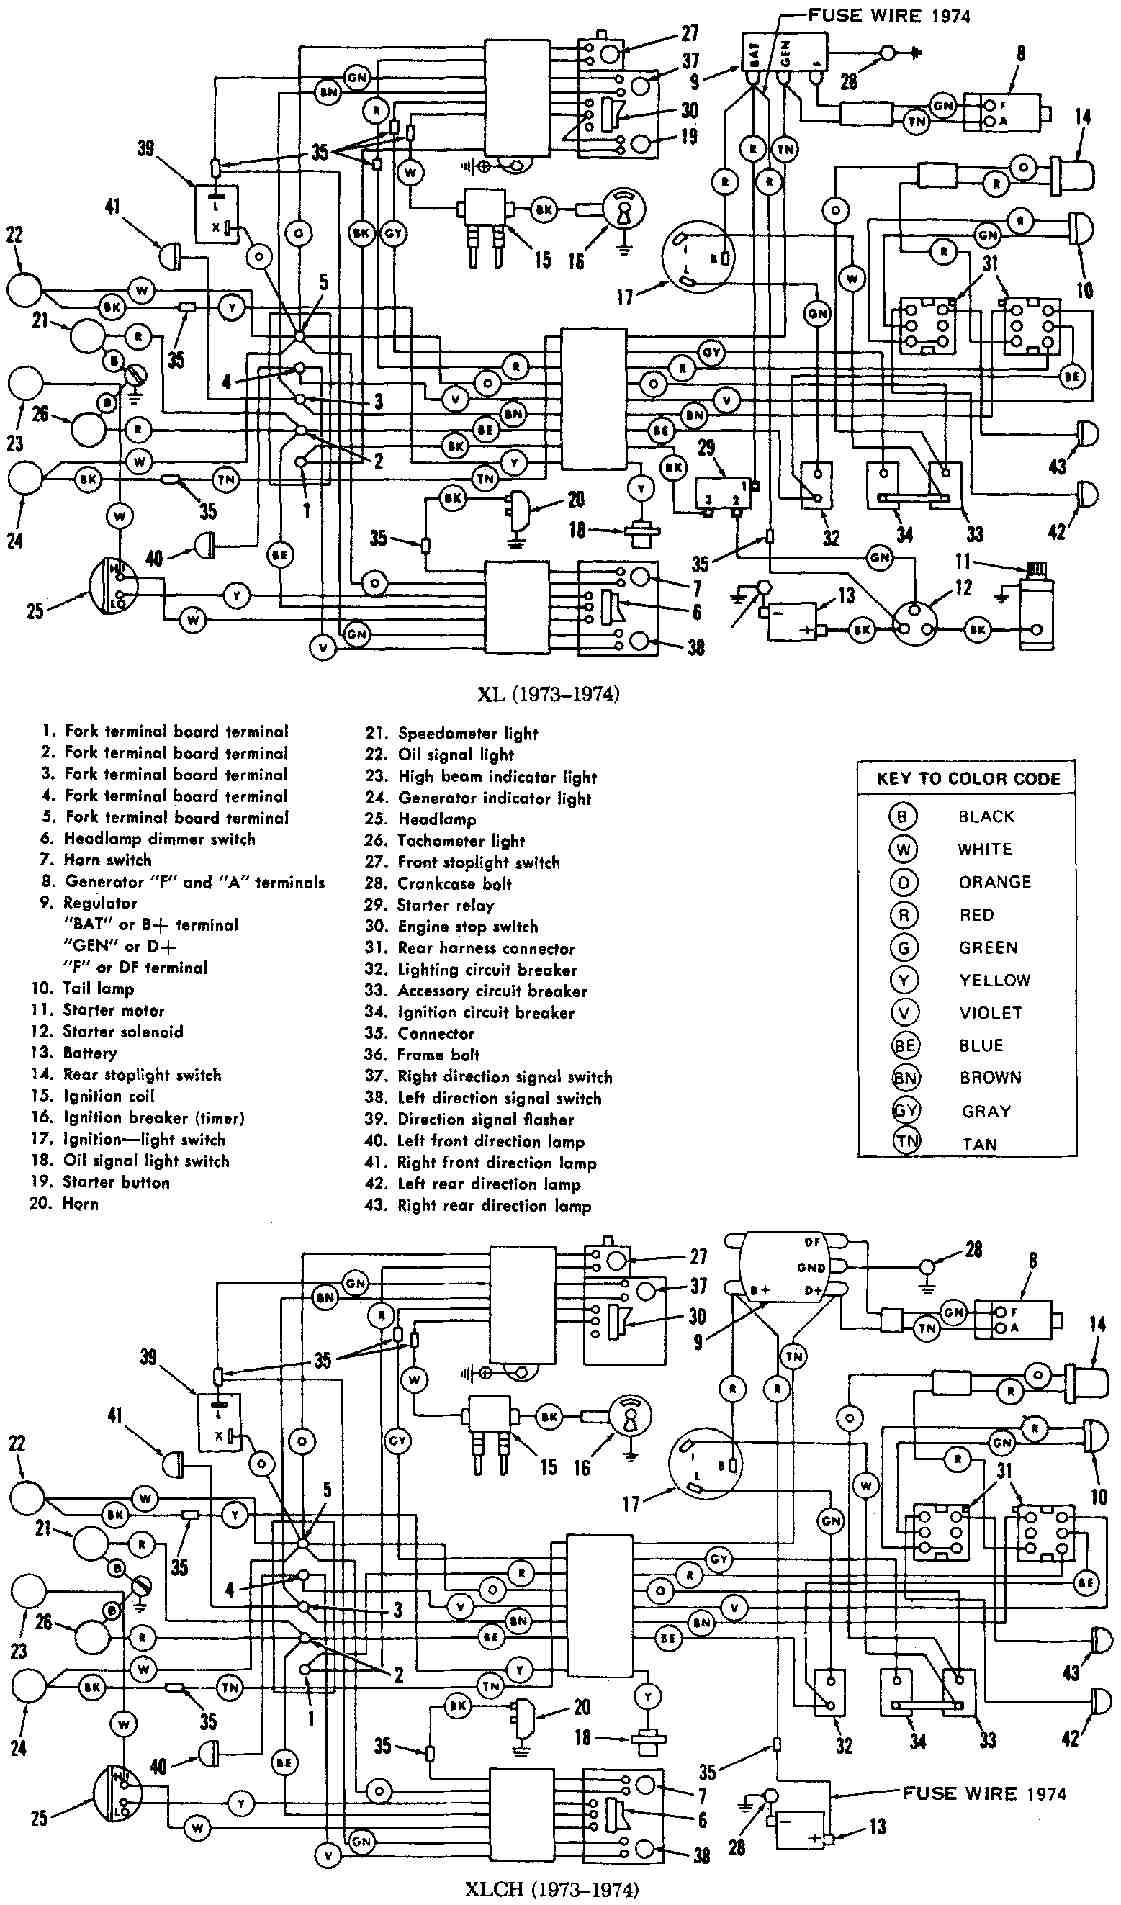 Turn Signal Wire Diagram Inspirational Turn Signal Wiring